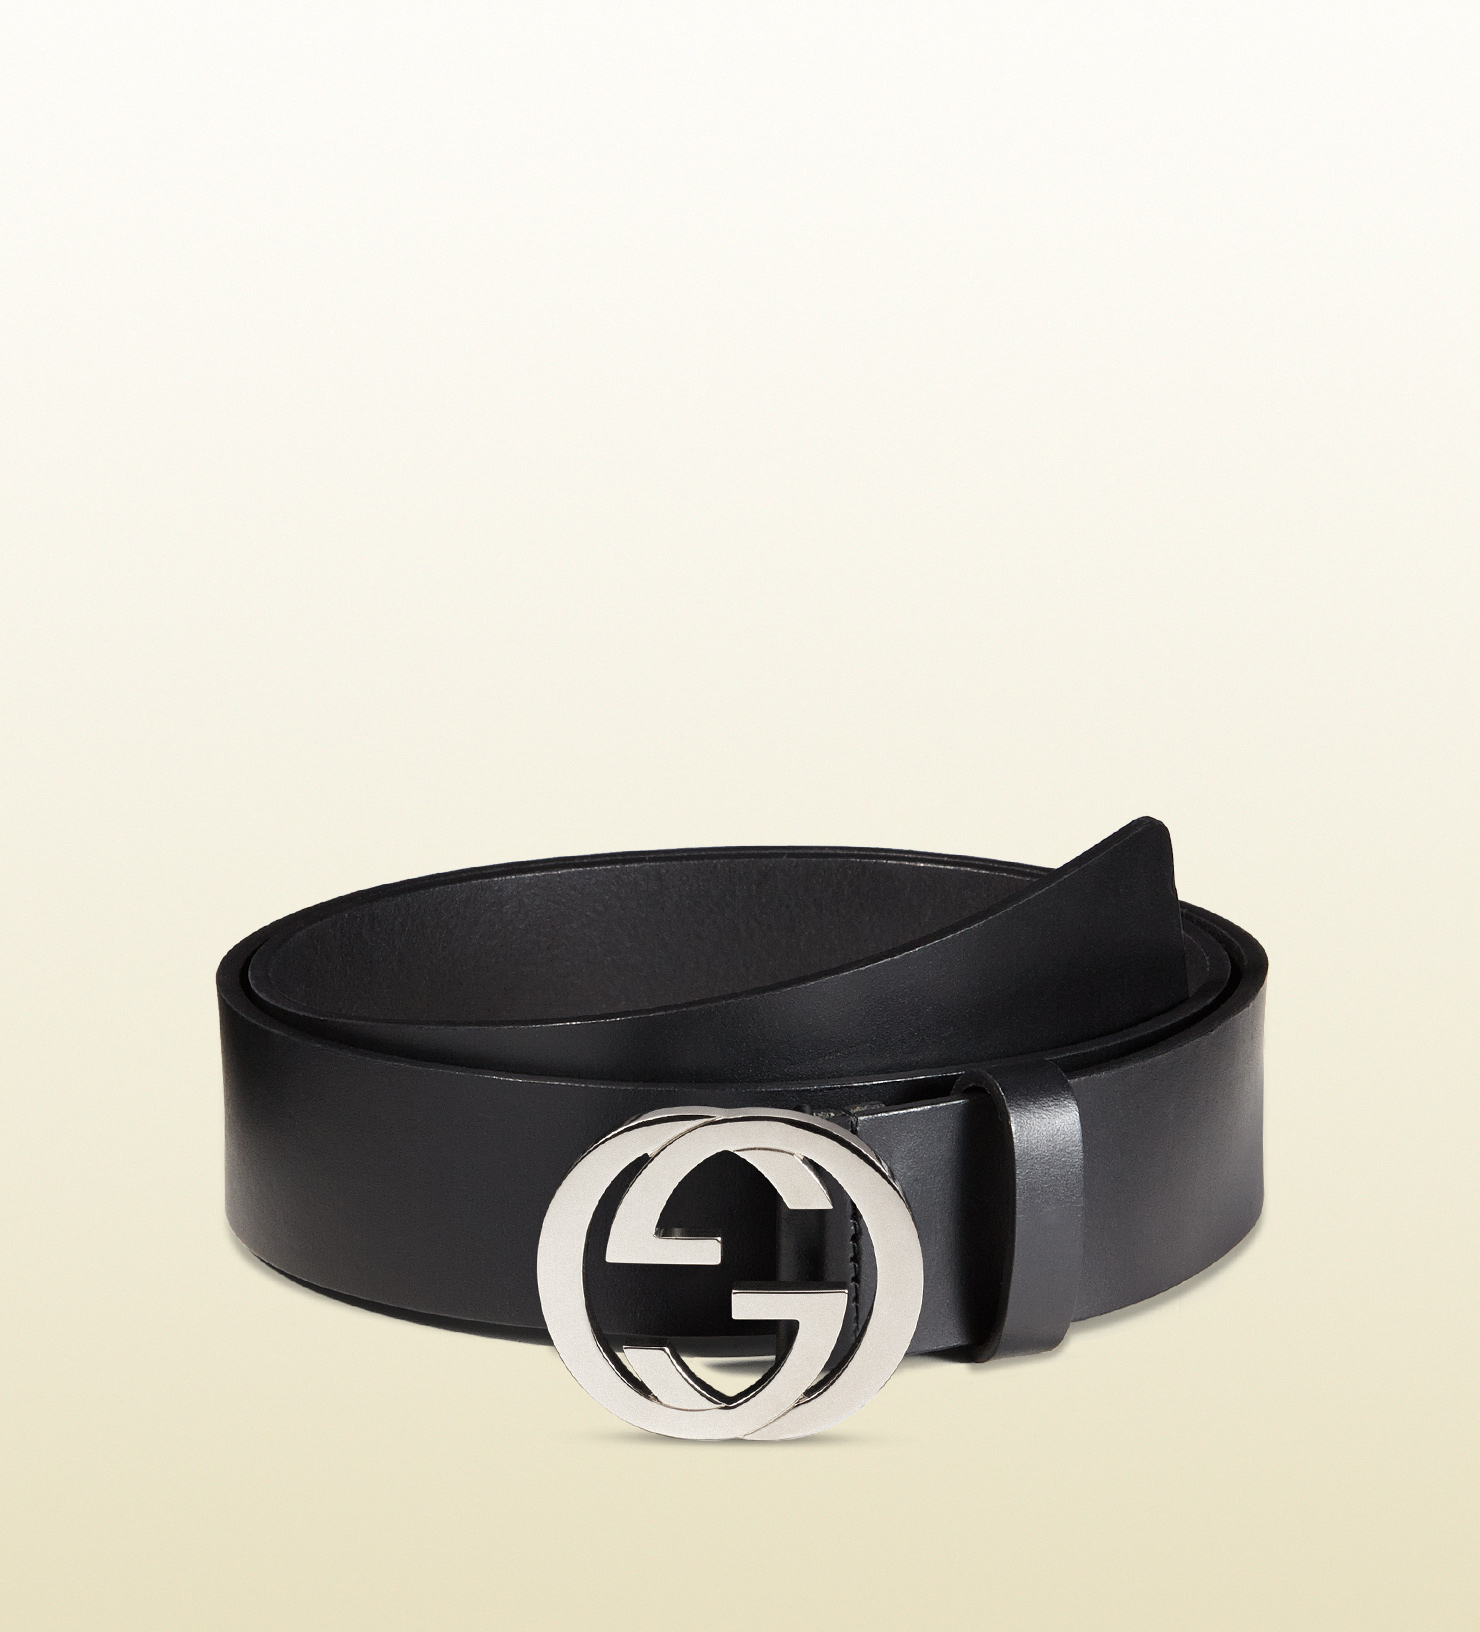 2272e5b41a0 Lyst - Gucci Leather Belt With Interlocking G Buckle in Black for Men